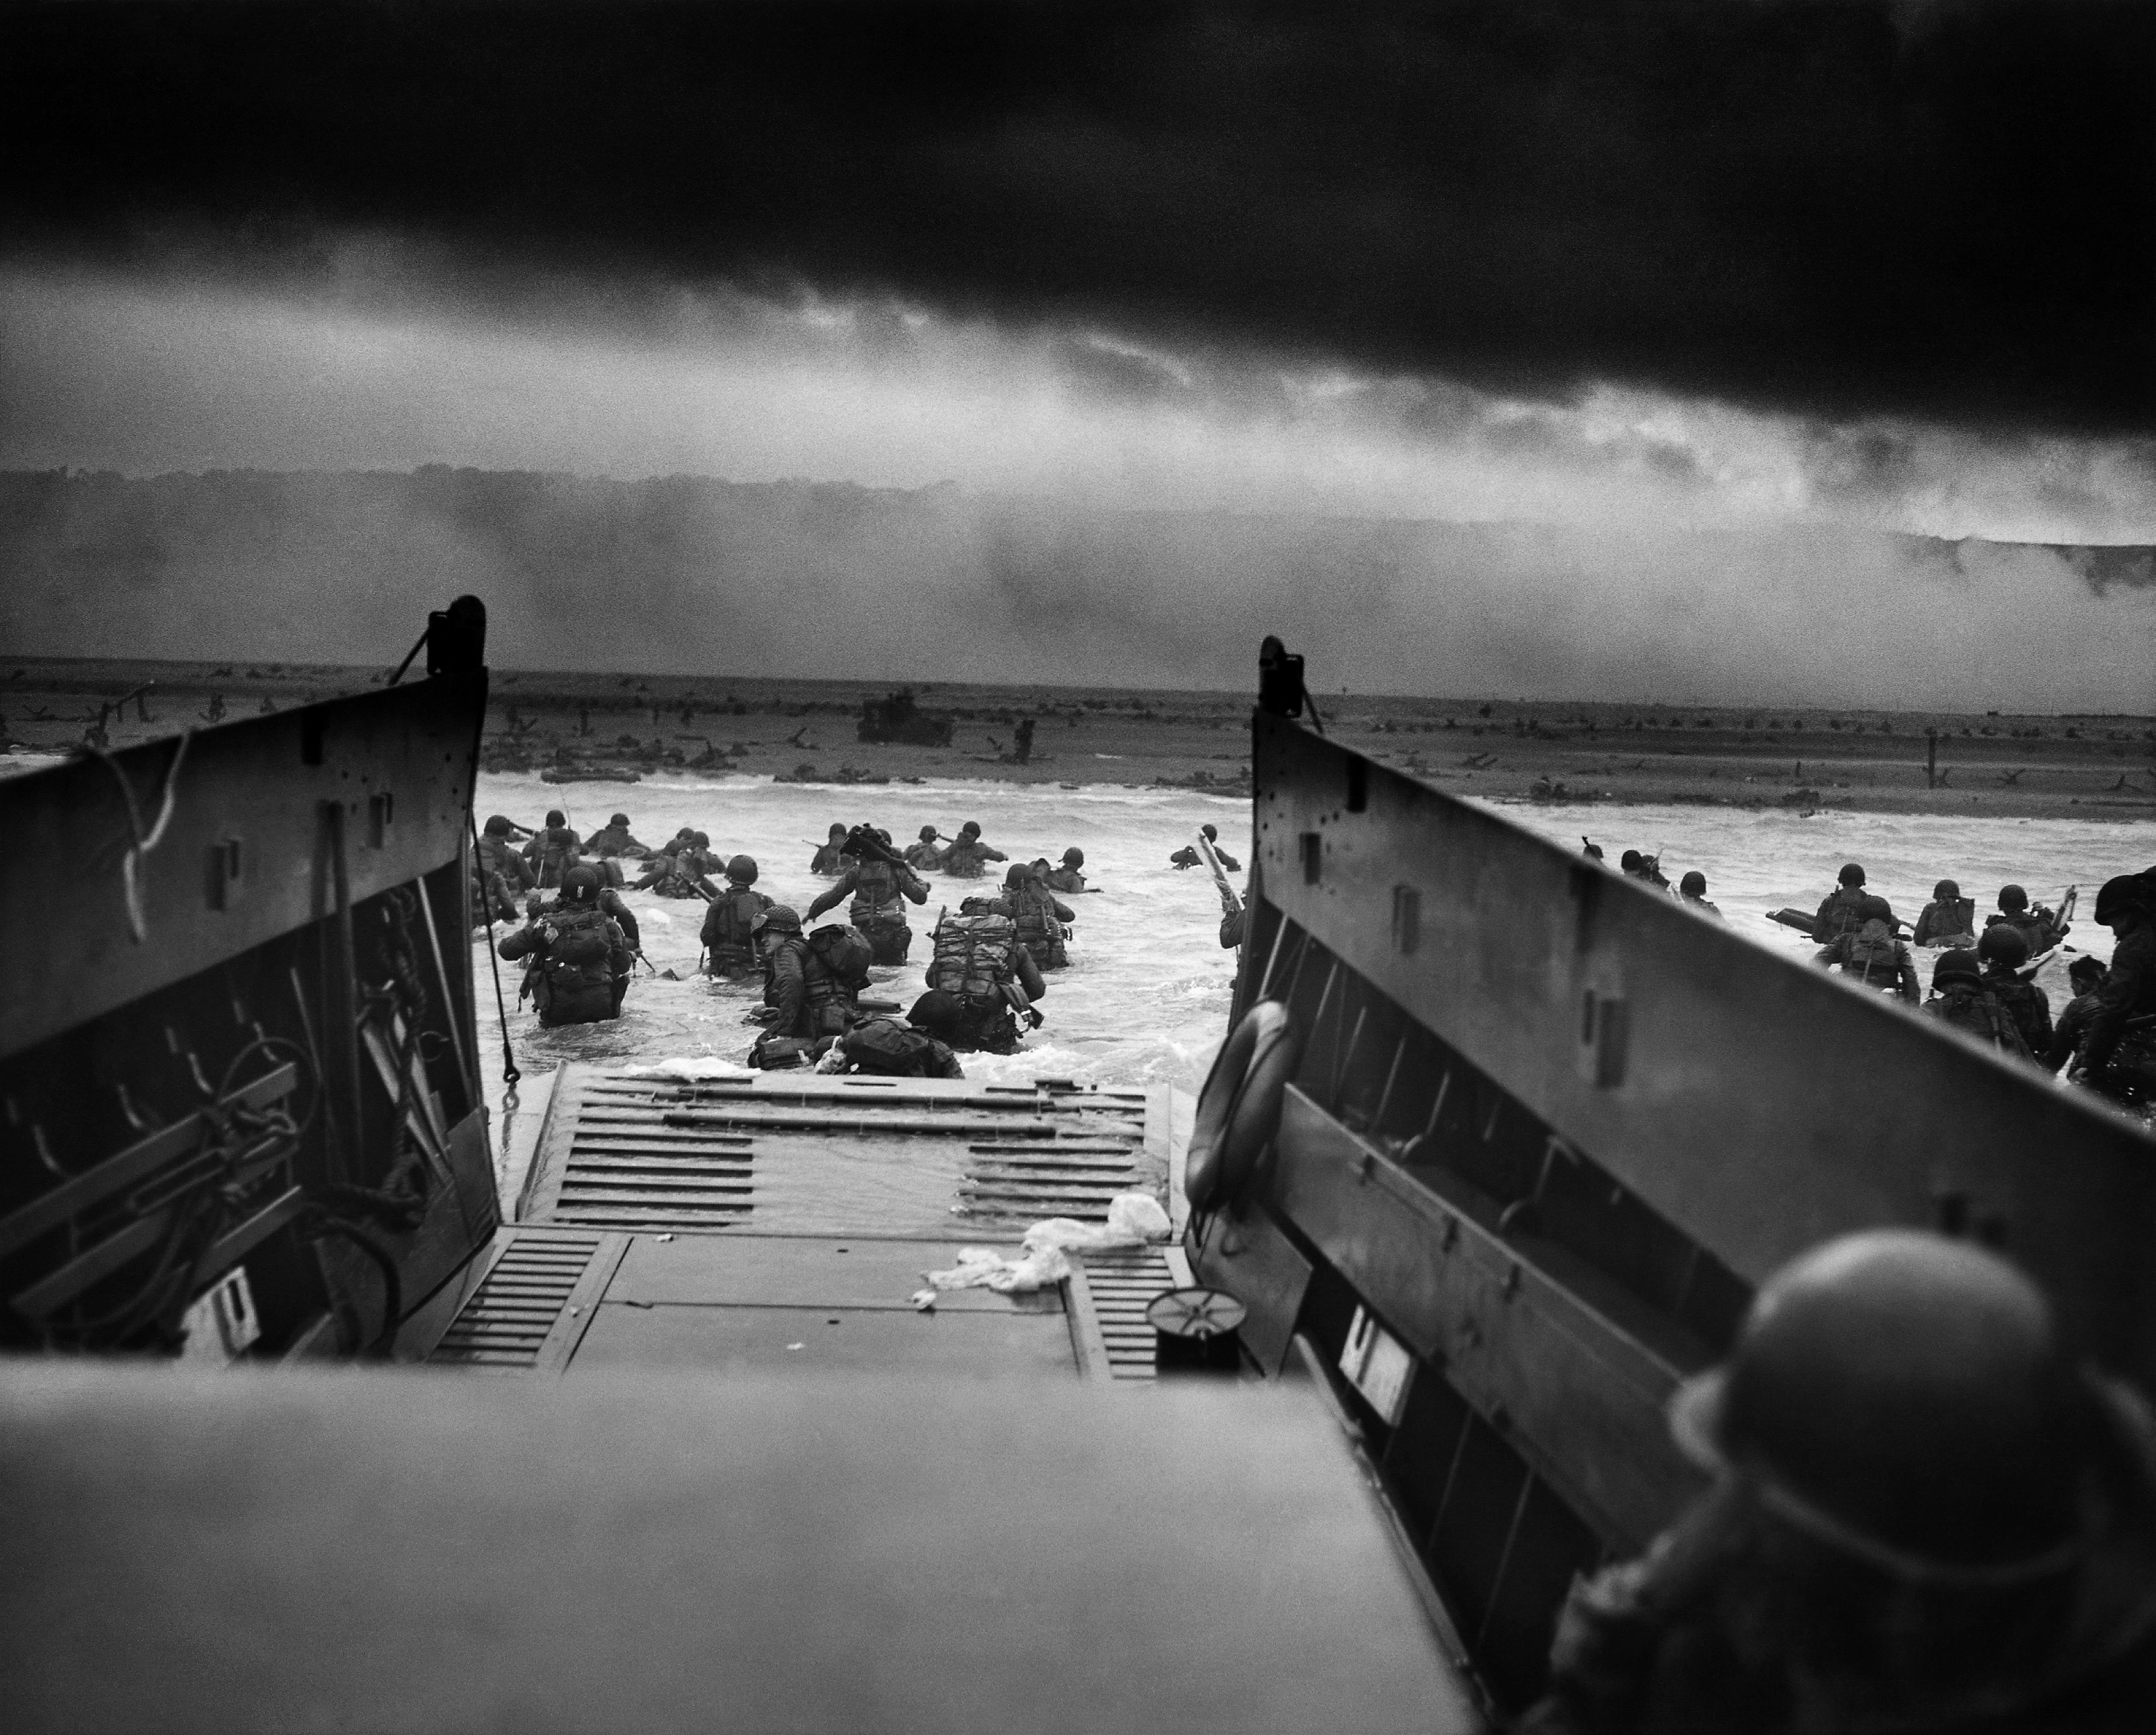 U.S. troops wading through water after reaching Normandy, France, and landing on Omaha Beach on D-Day, June 6, 1944. (Photo: Universal History Archive/UIG via Getty Images)